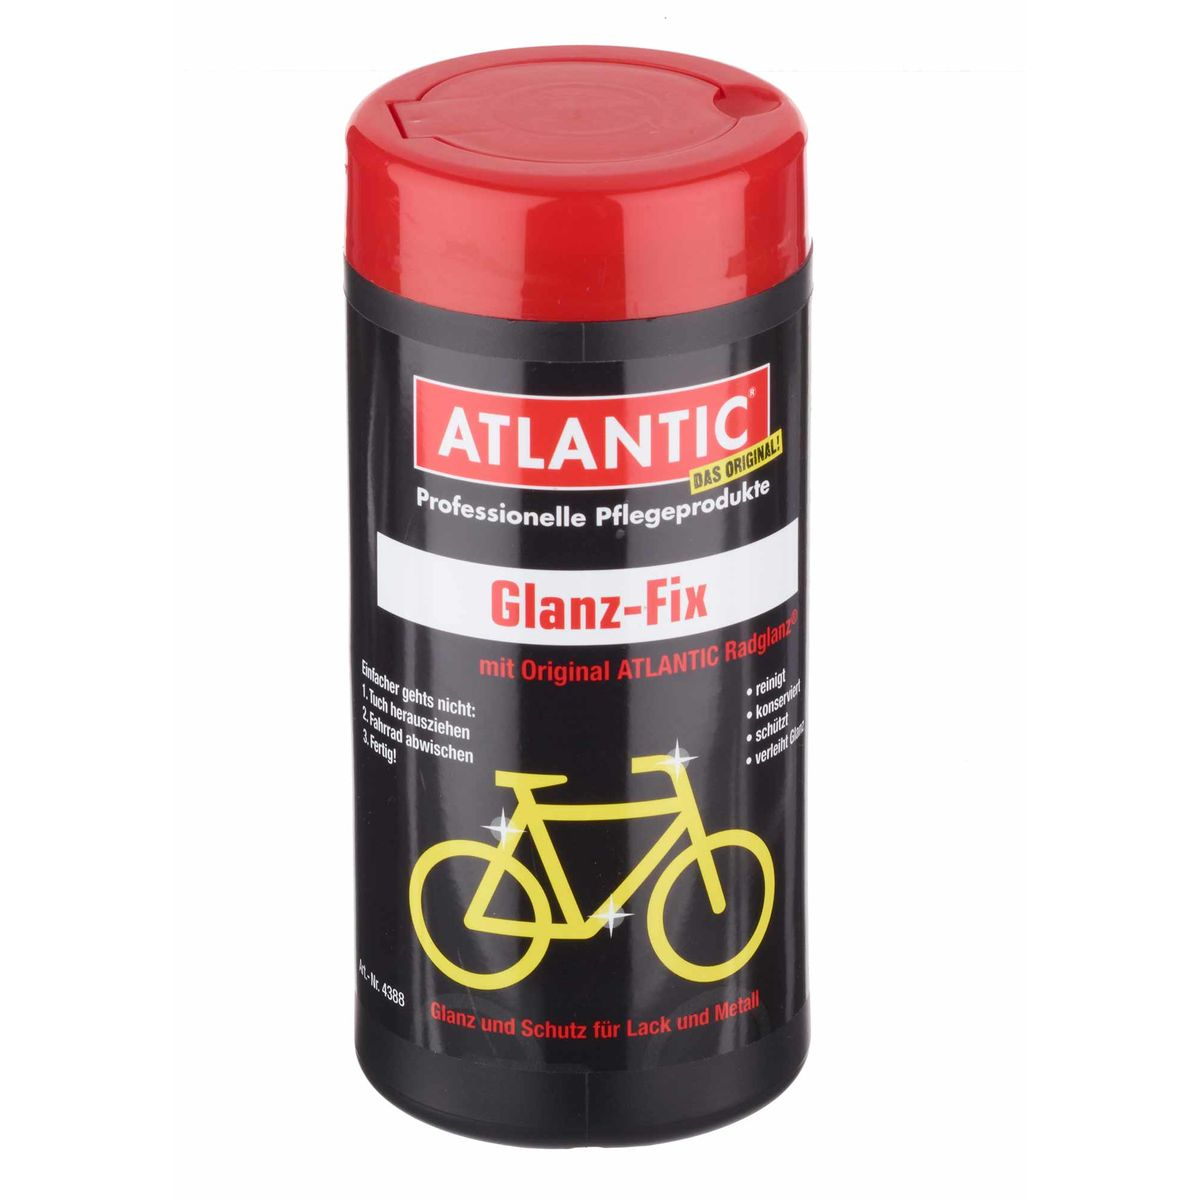 Atlantic Glanz-Fix cleaning wipes | item_misc